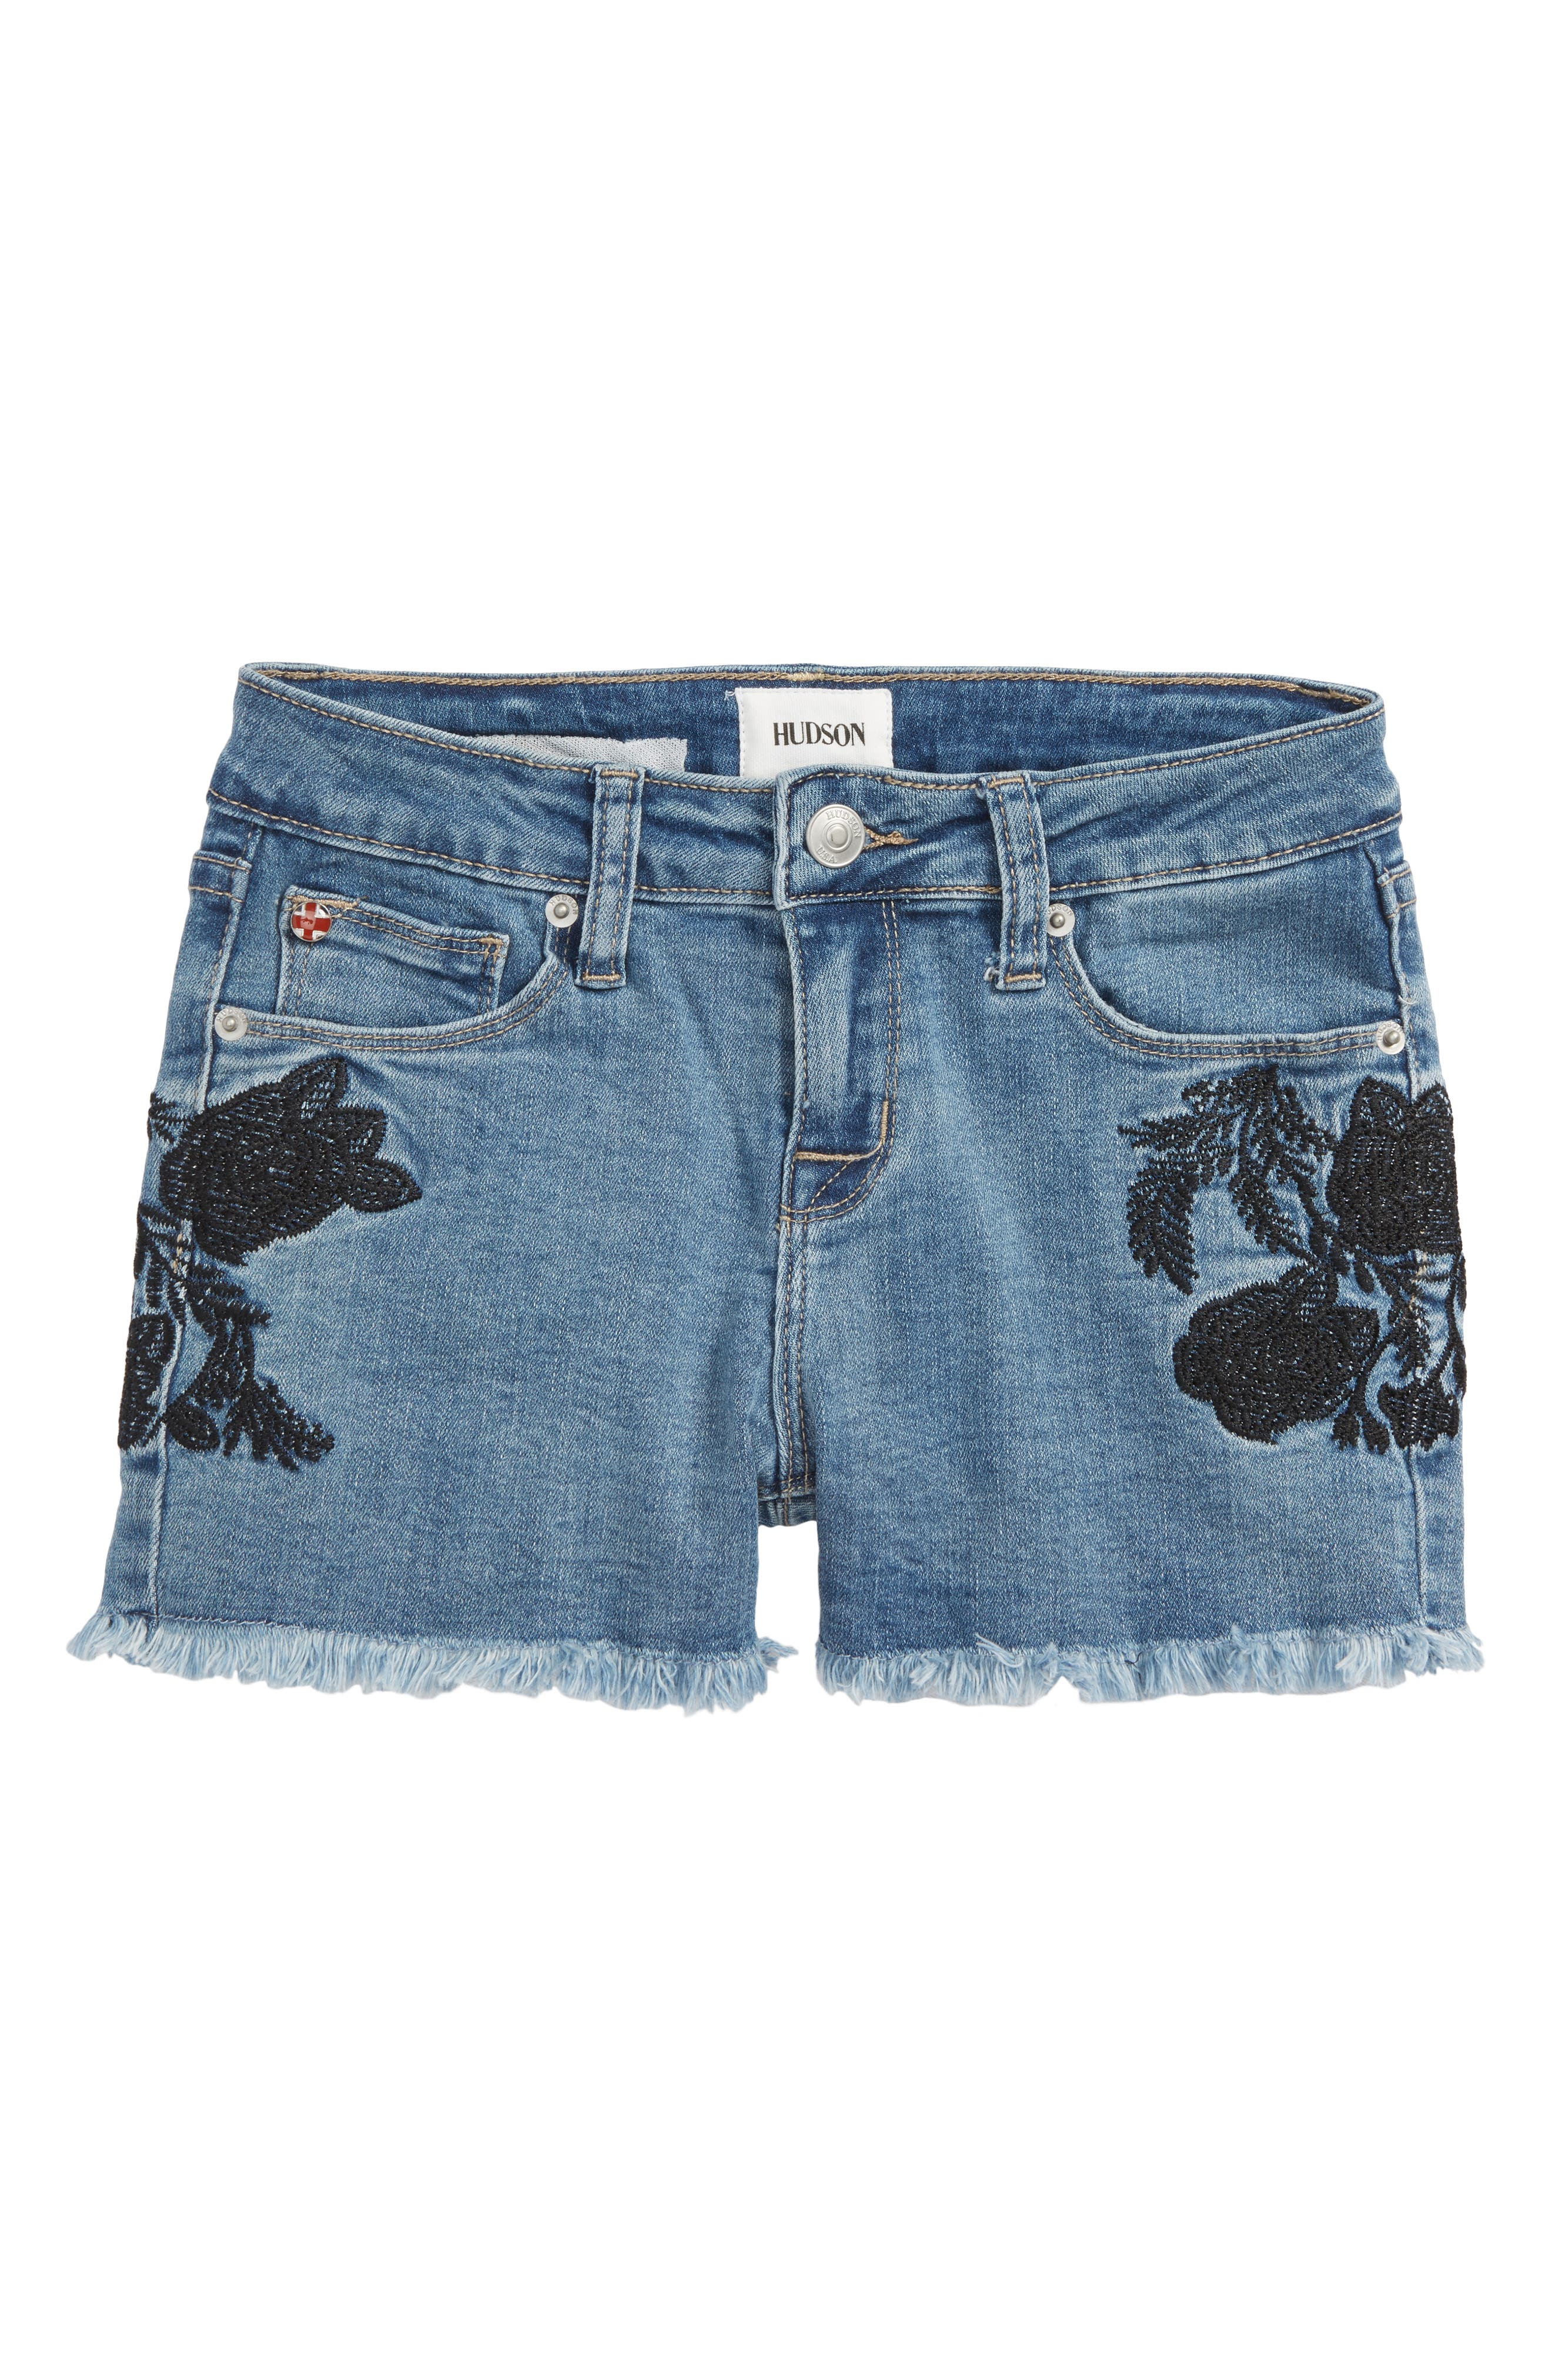 Floral Embroidery Frayed Hem Shorts,                             Main thumbnail 1, color,                             Crown Blue